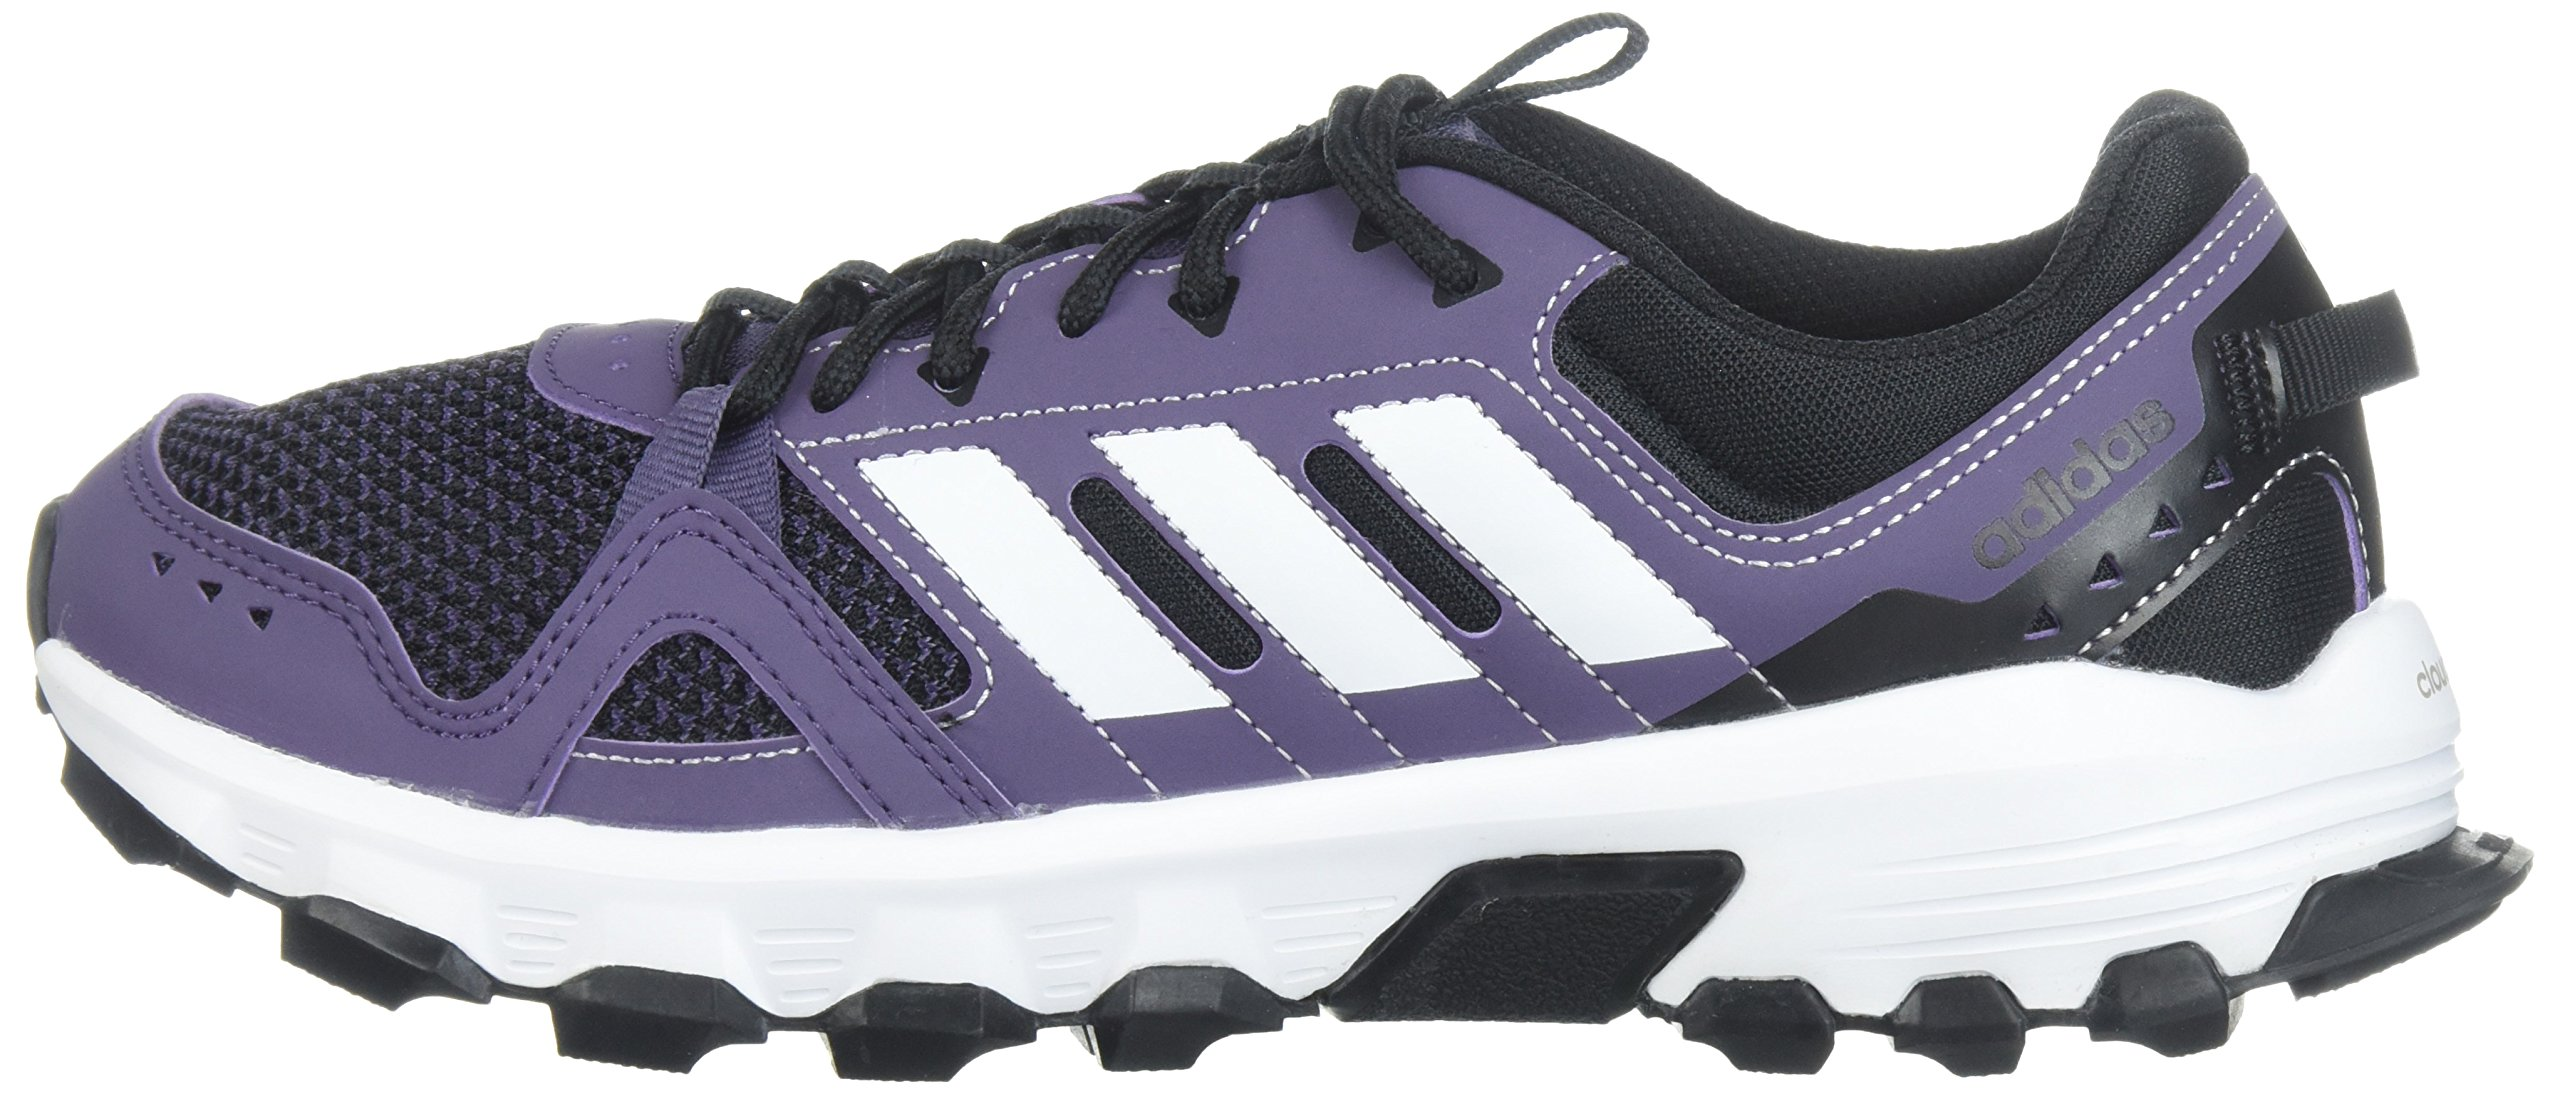 adidas Women's Rockadia w Trail Running Shoe, Trace Purple/White/Core Black, 7 M US by adidas (Image #5)